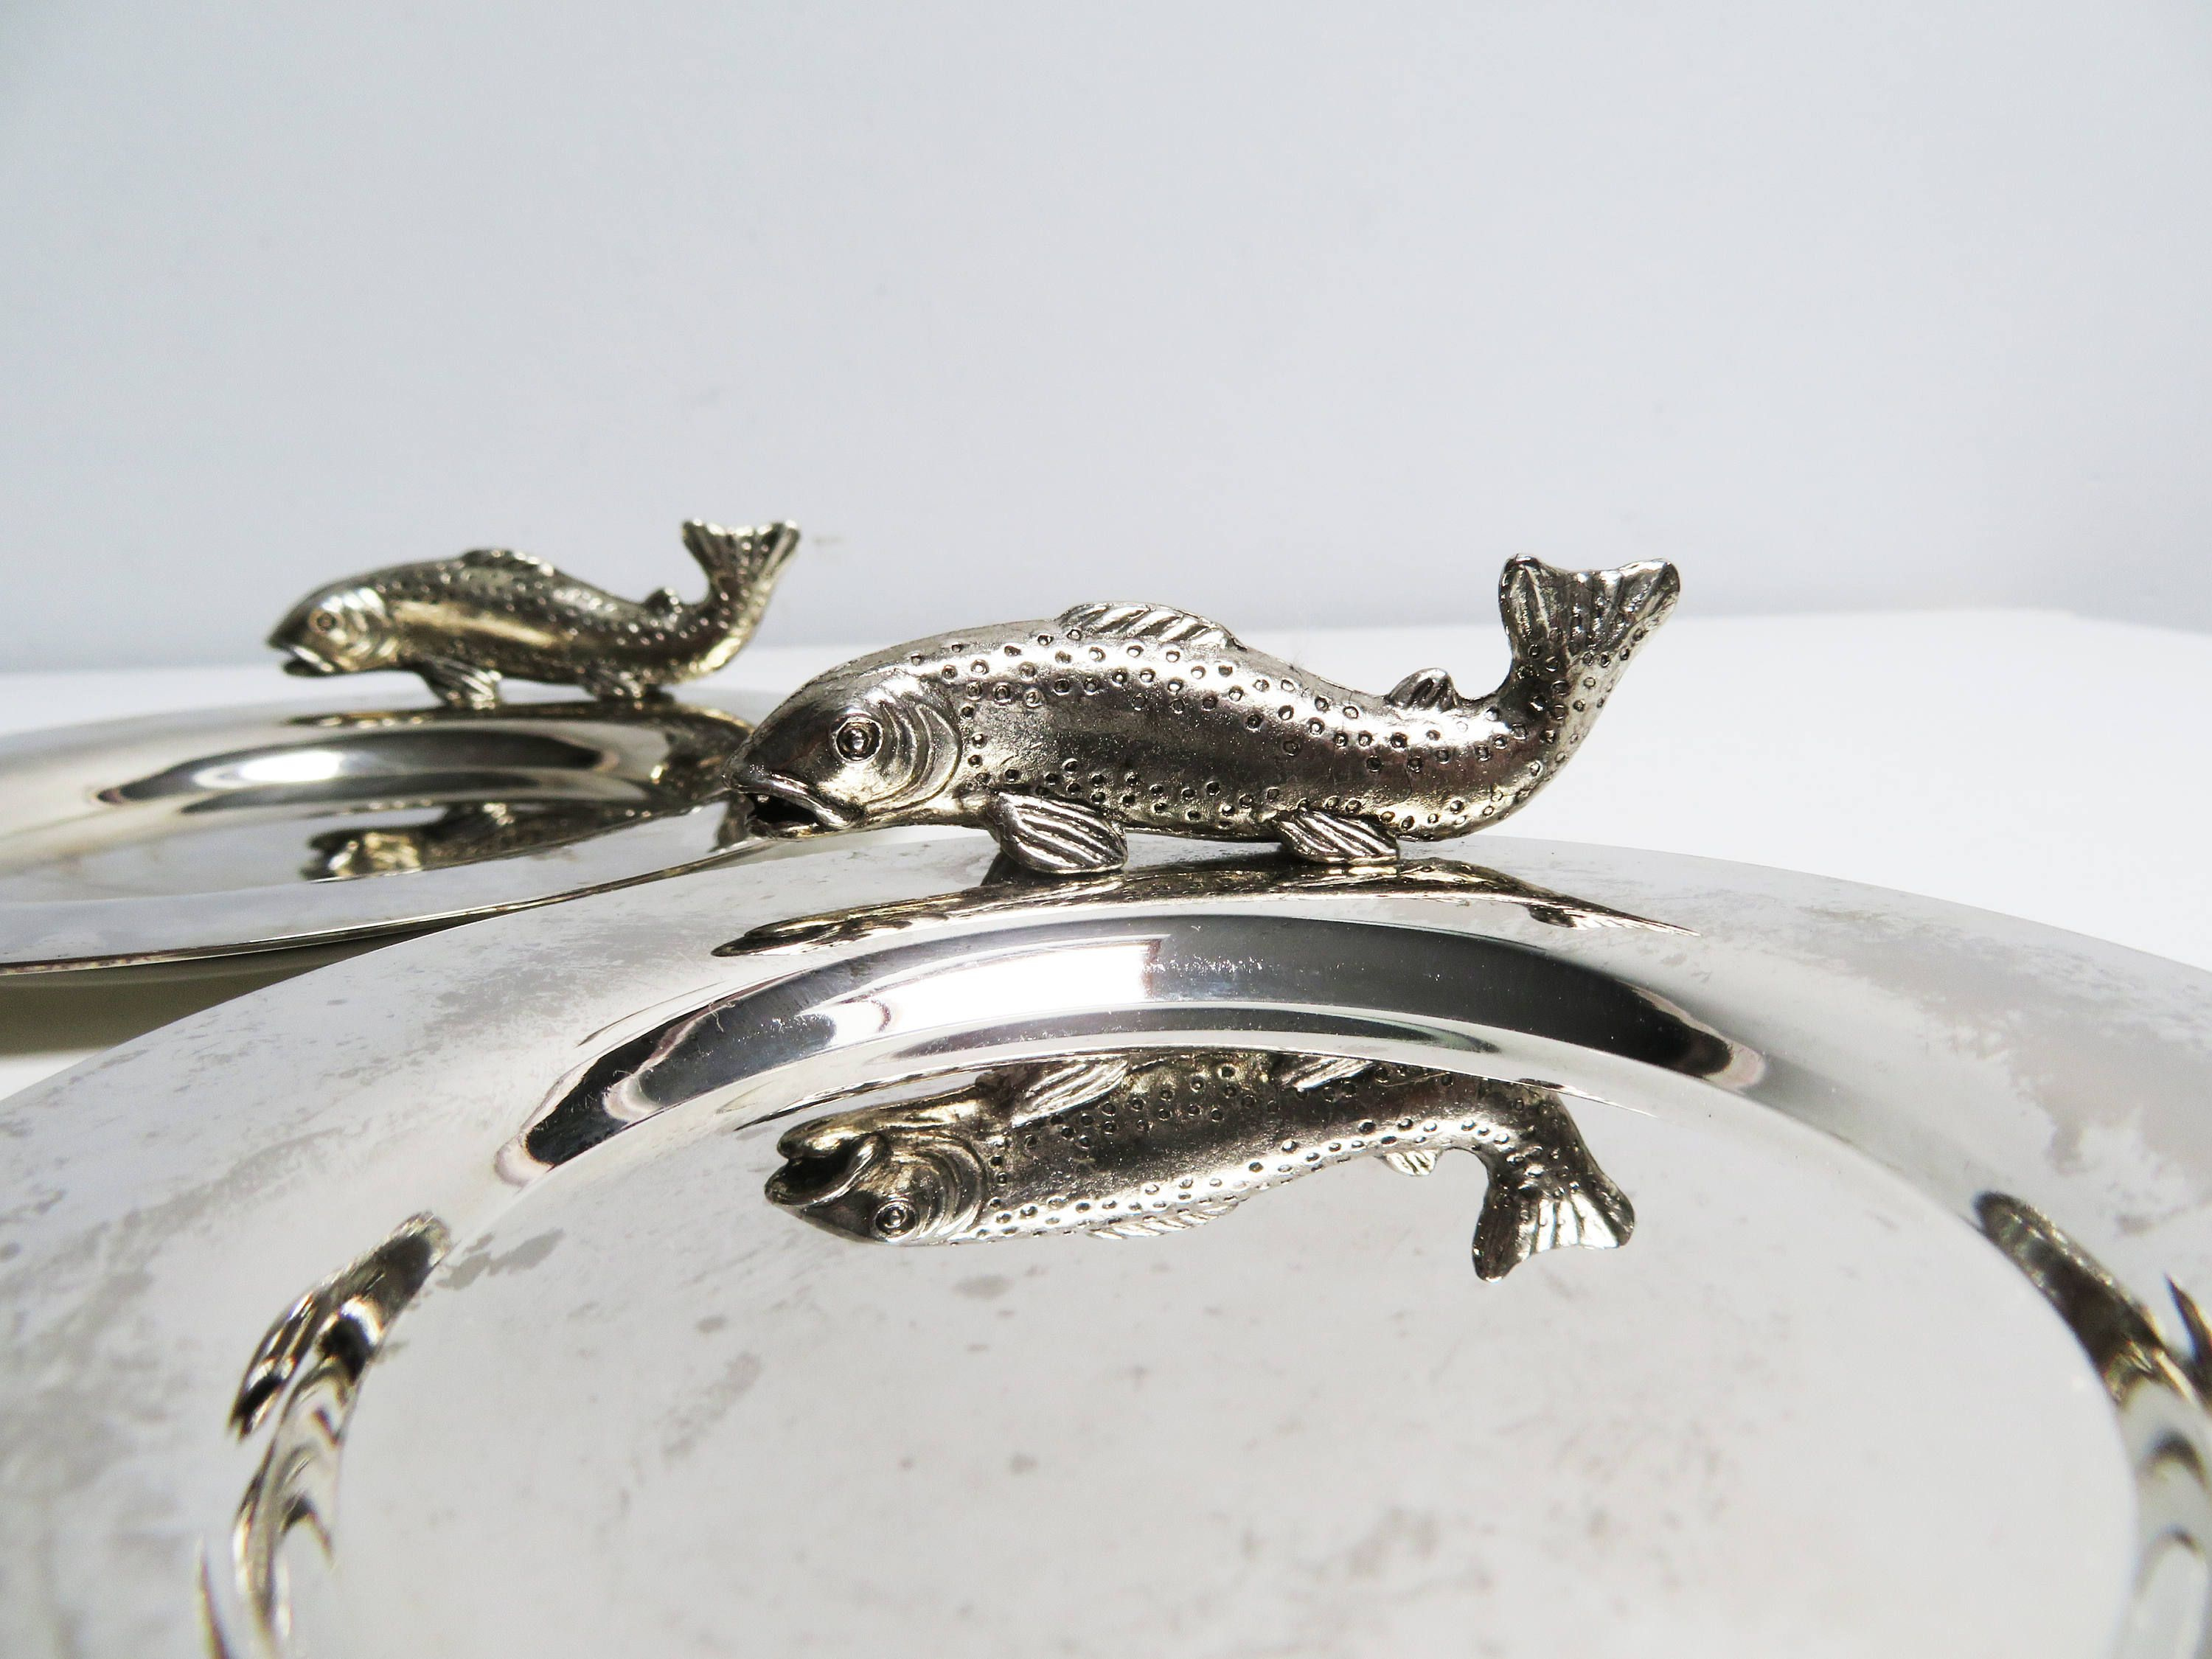 Fish Side Dishes Fish Plate Bottle Holders Silver Plate Vintage Silver Table Decorations Coasters Trays Silverware Tray & Four vintage silver plate fish dish fish tip tray fish bone dish ...